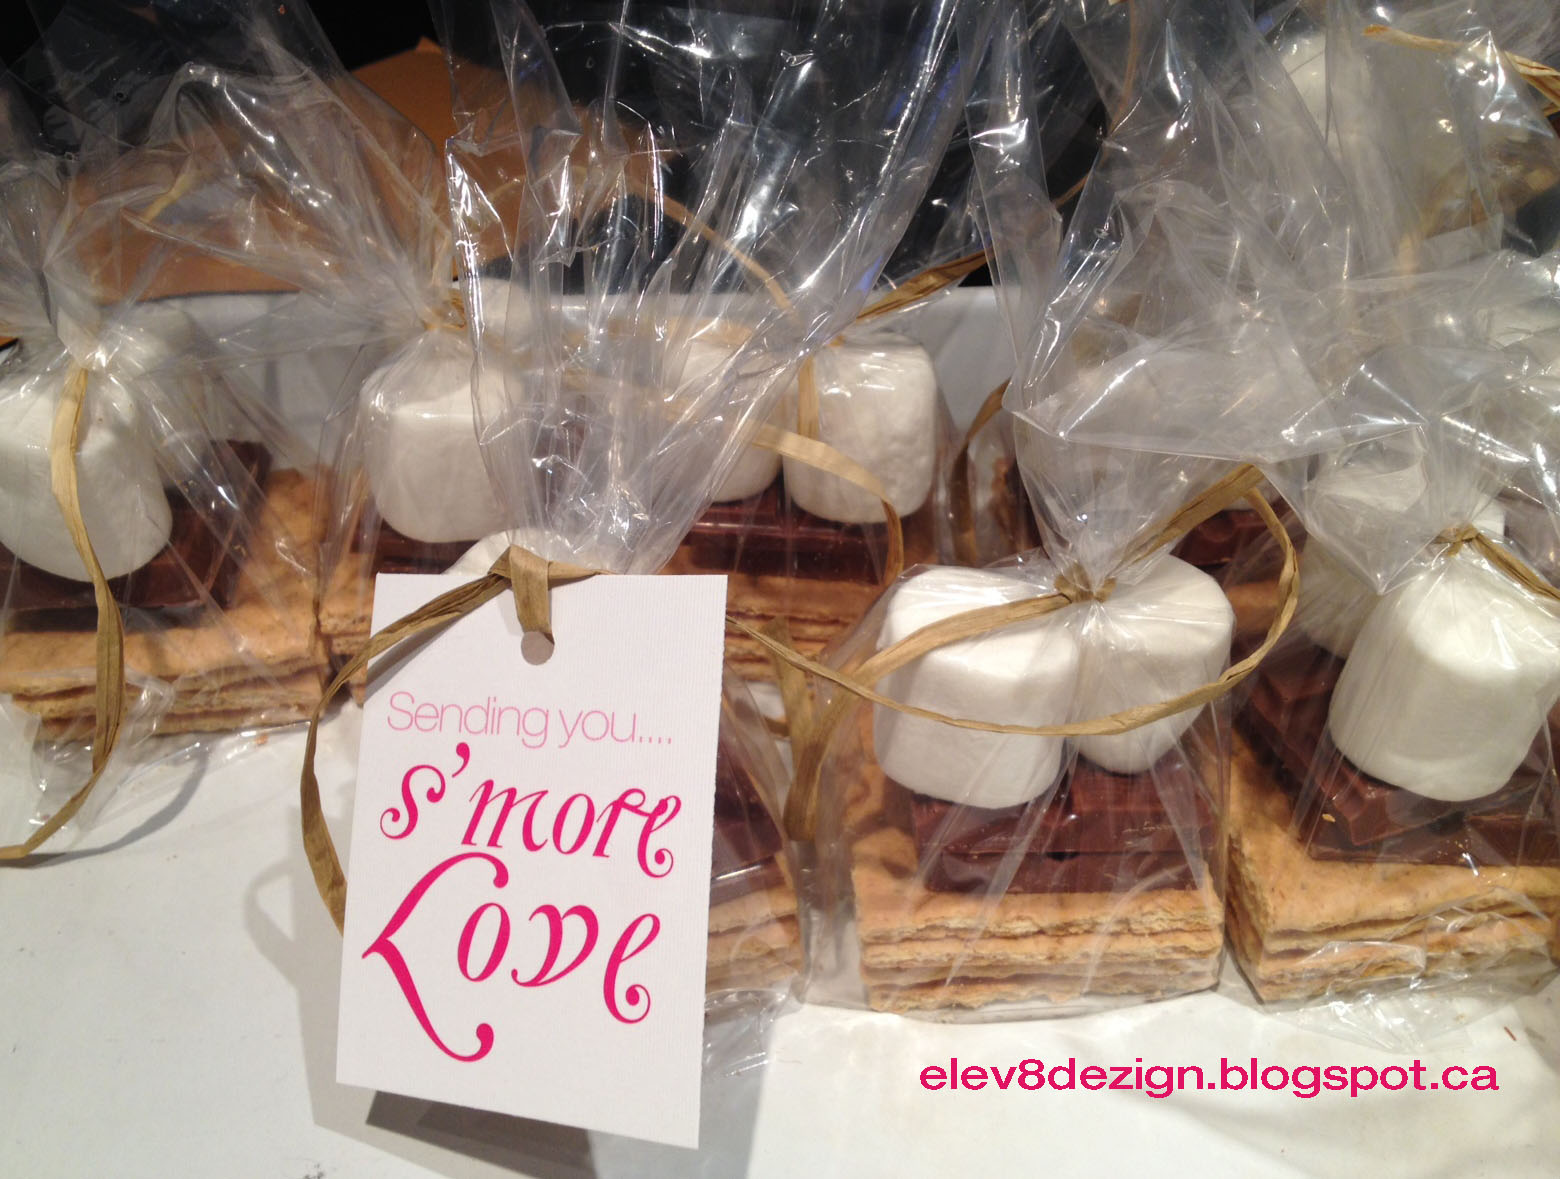 elev8 dezign: S'more Wedding Favors